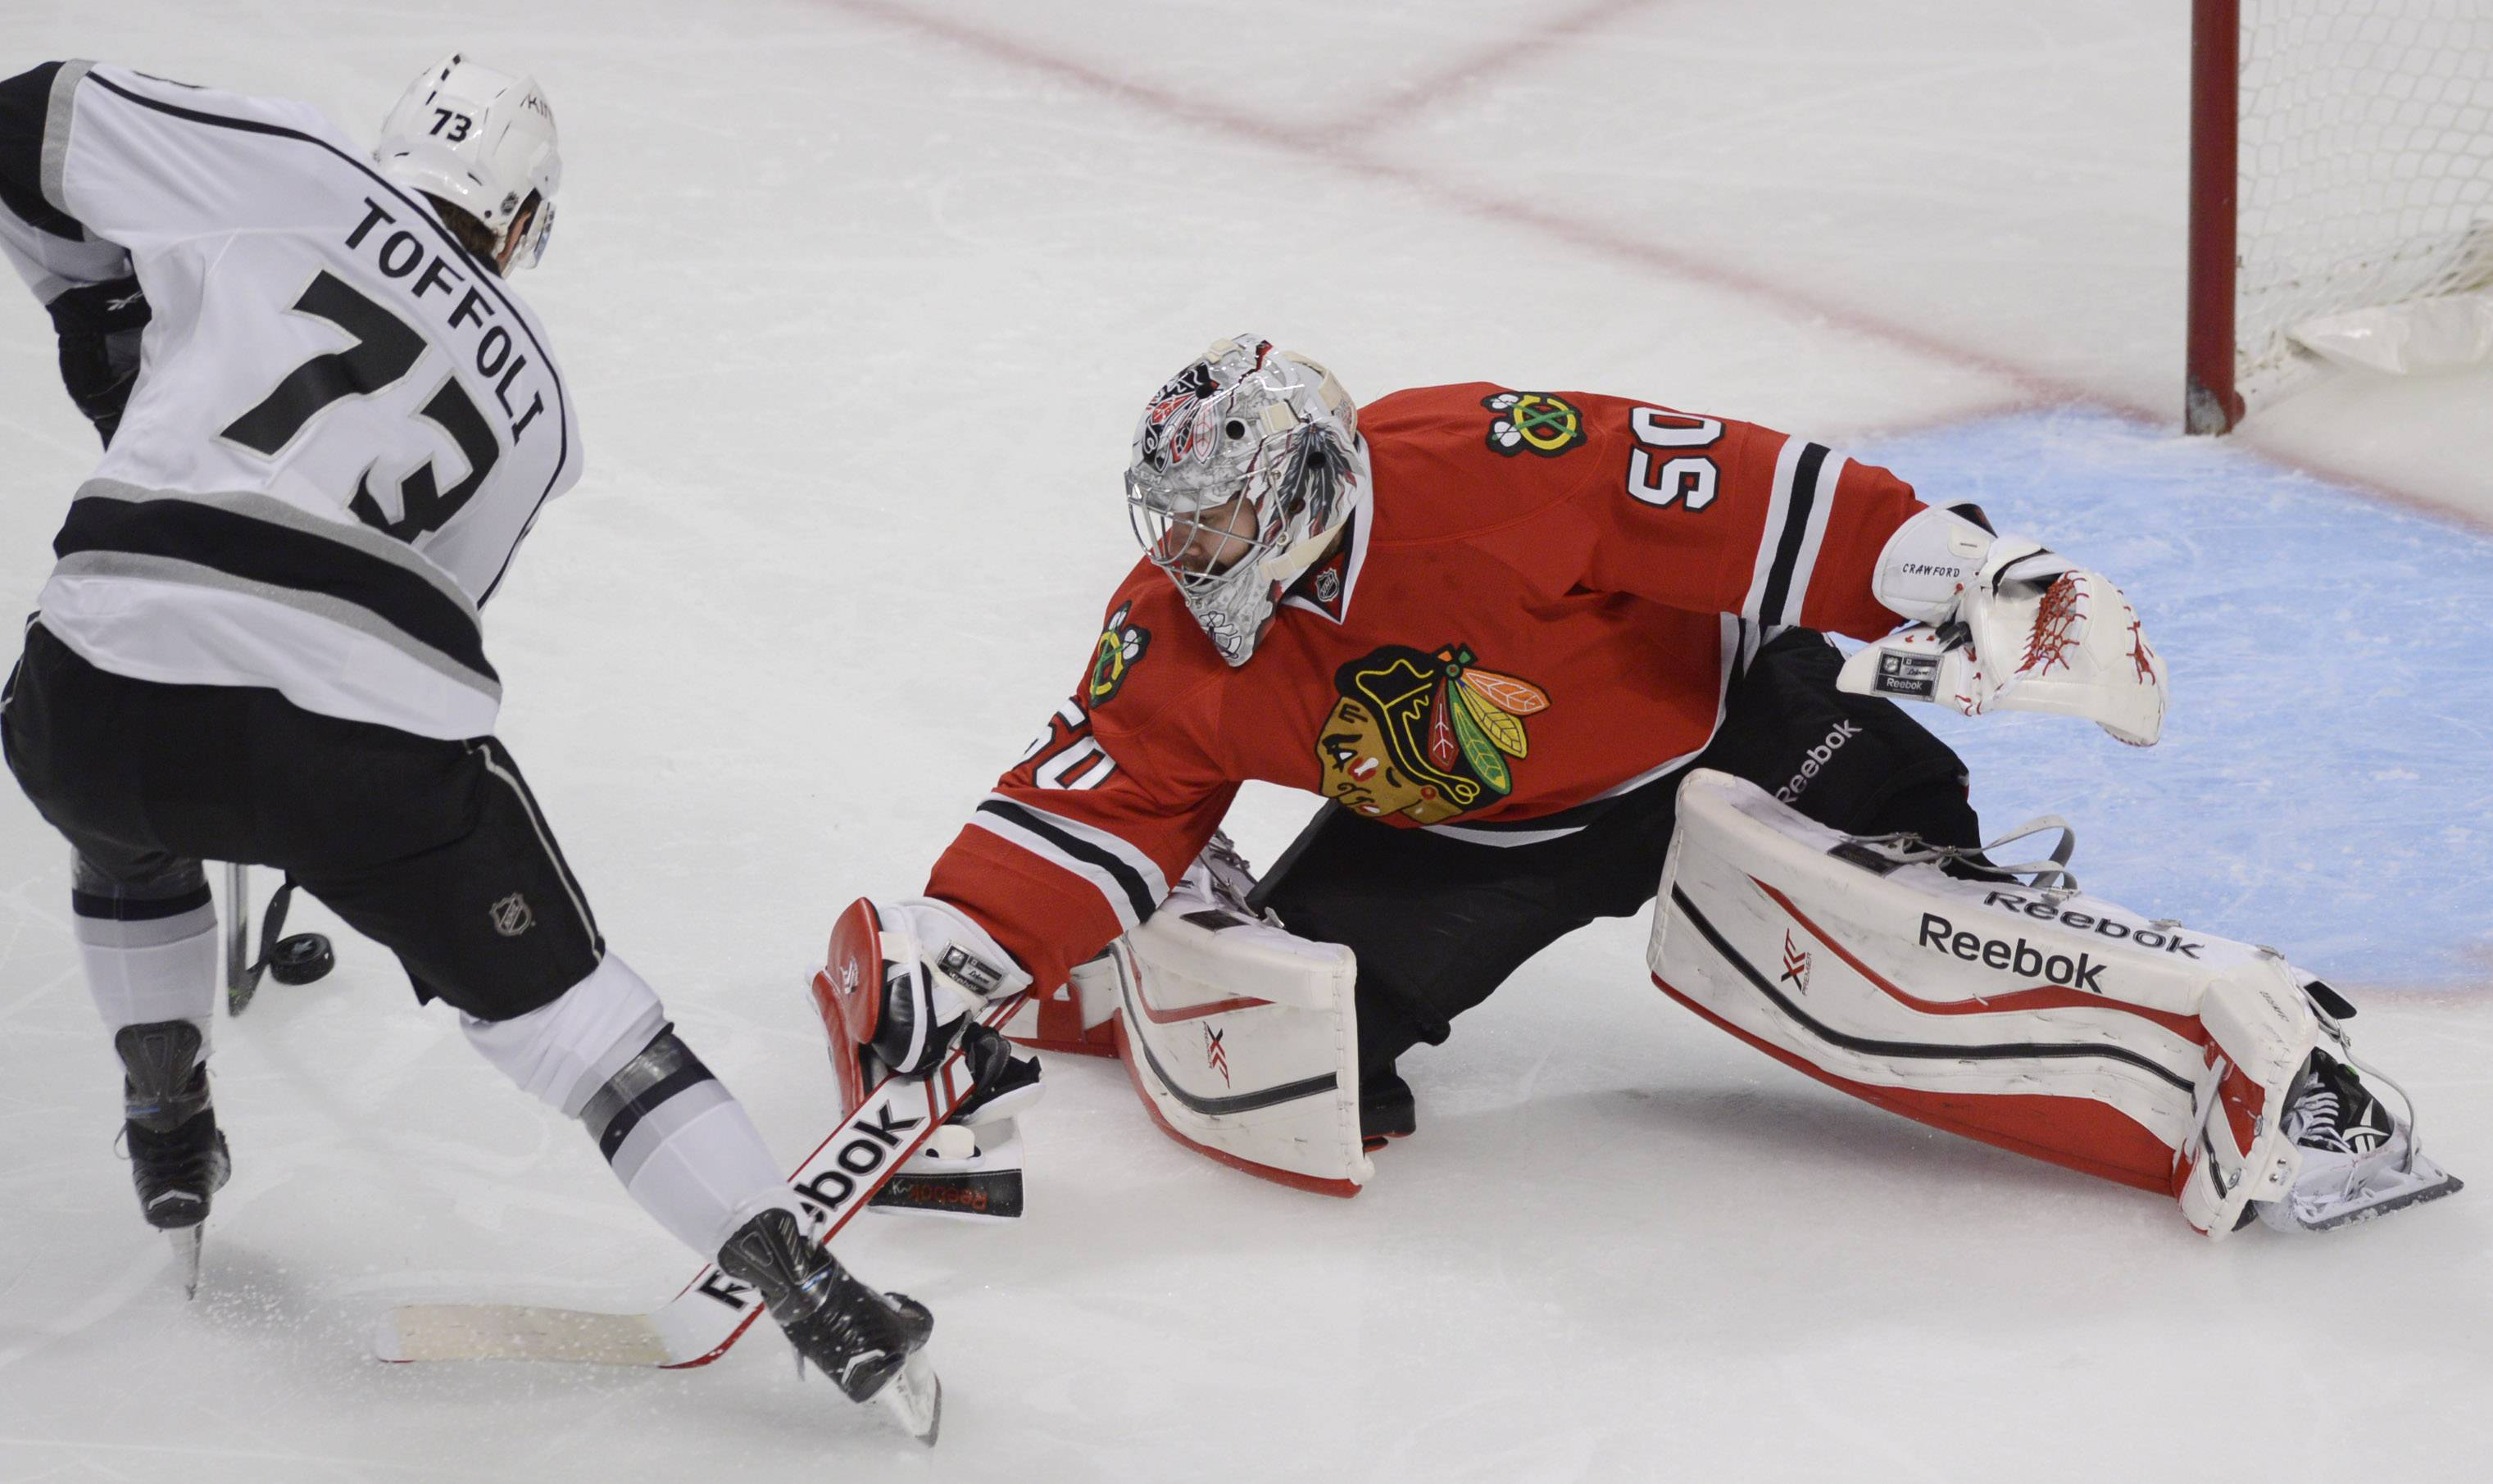 Chicago Blackhawks goalie Corey Crawford, right, makes a save on a shot by Los Angeles Kings center Tyler Toffoli during the third period.